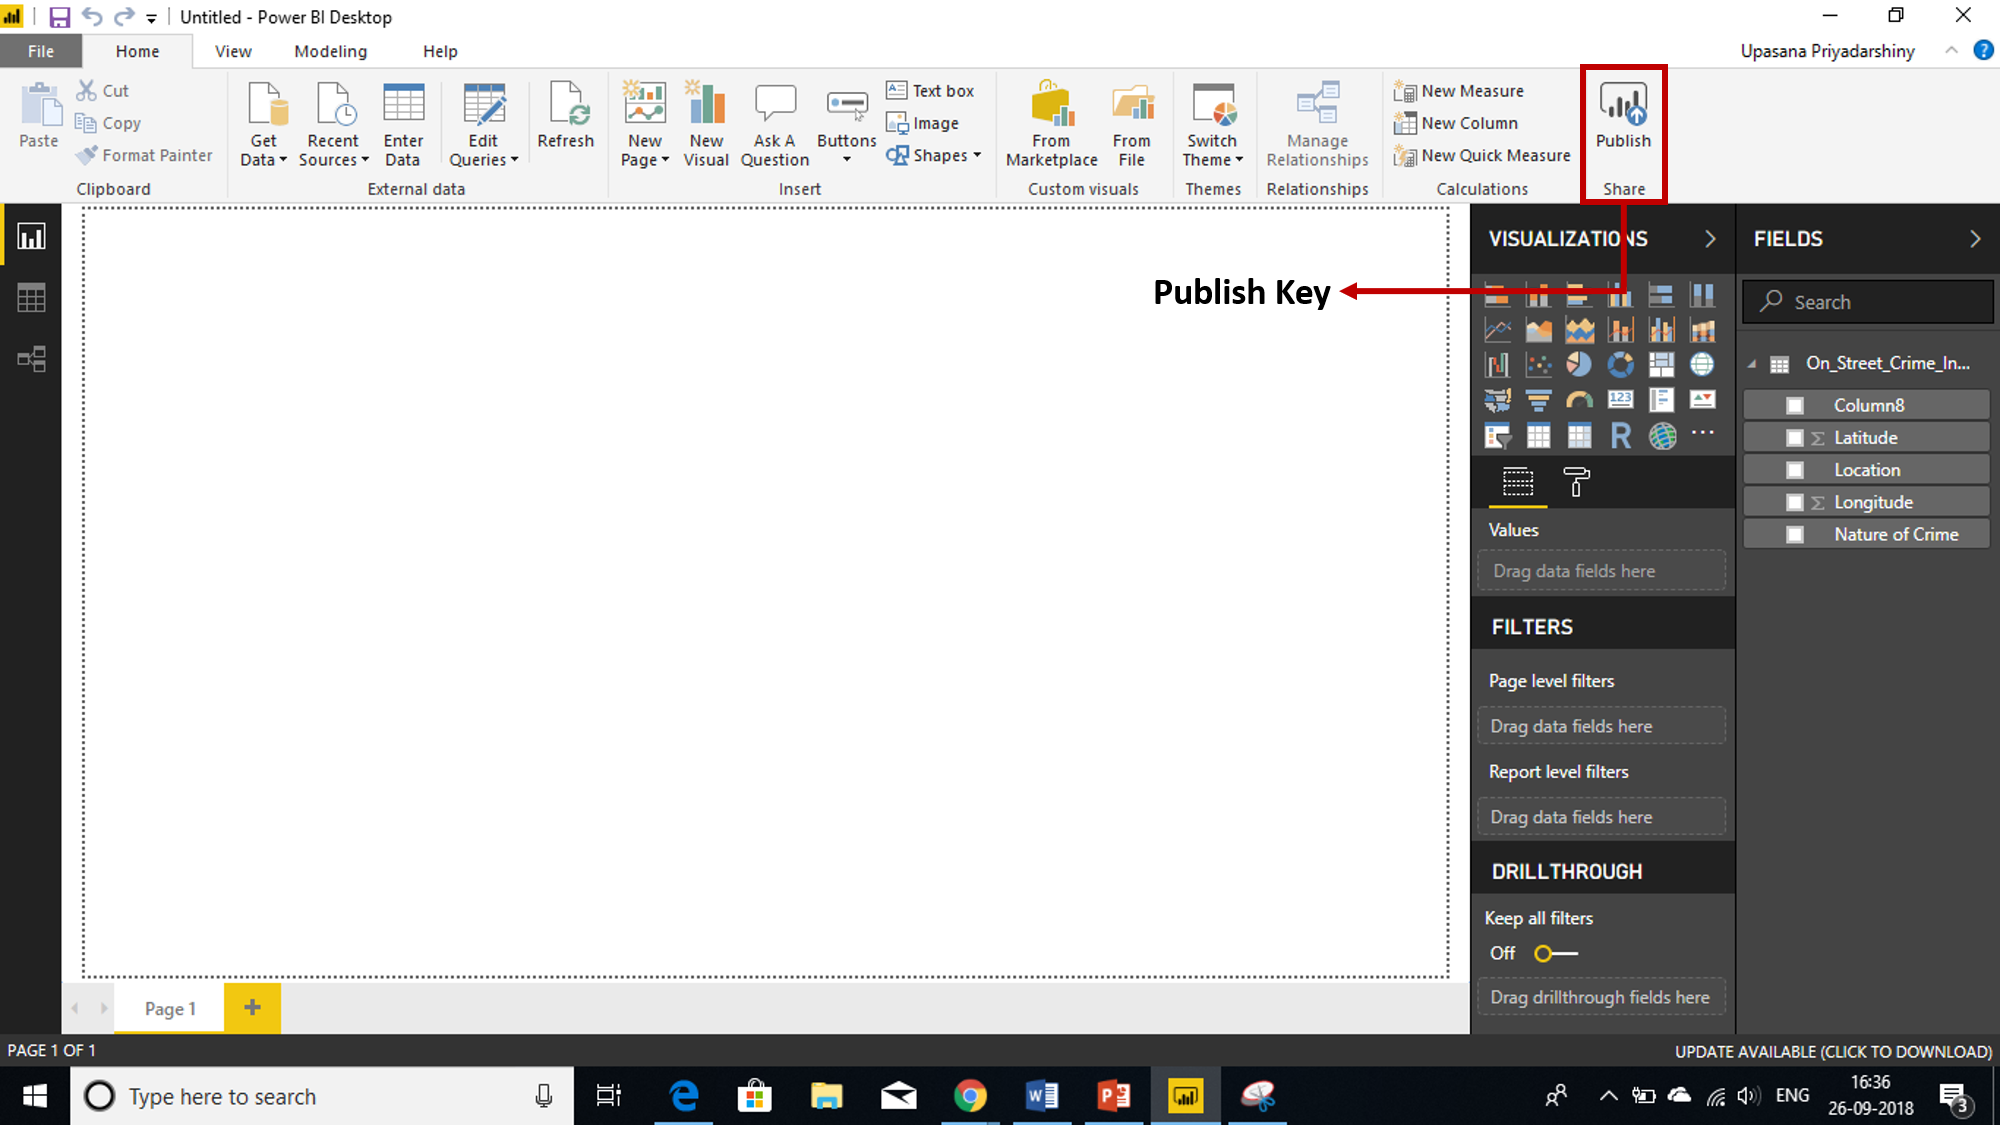 Publish Key - Power BI Reports - Edureka